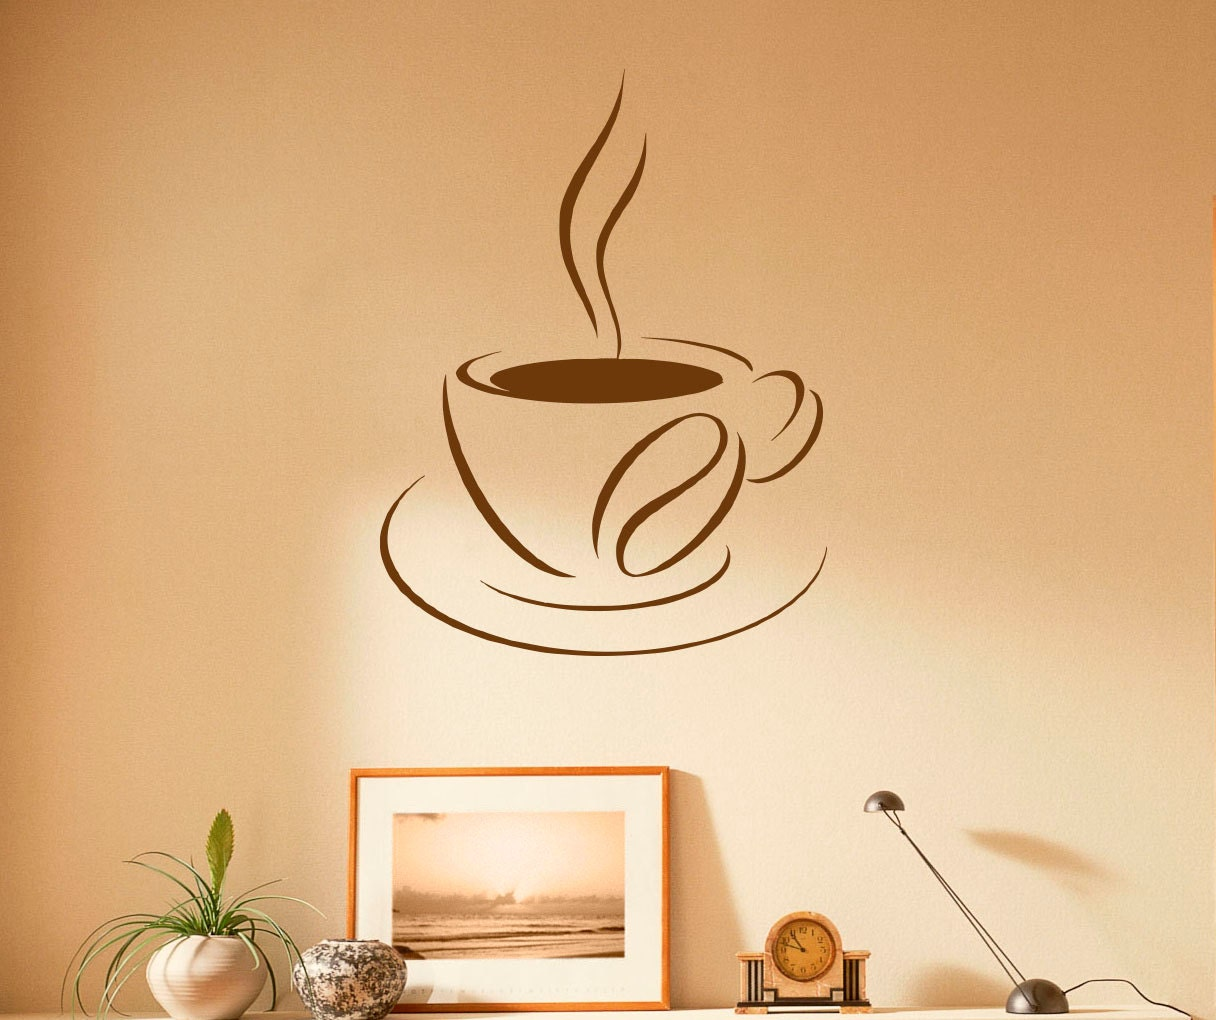 Coffee Cup Wall Decal Coffee House Vinyl Stickers Cafe